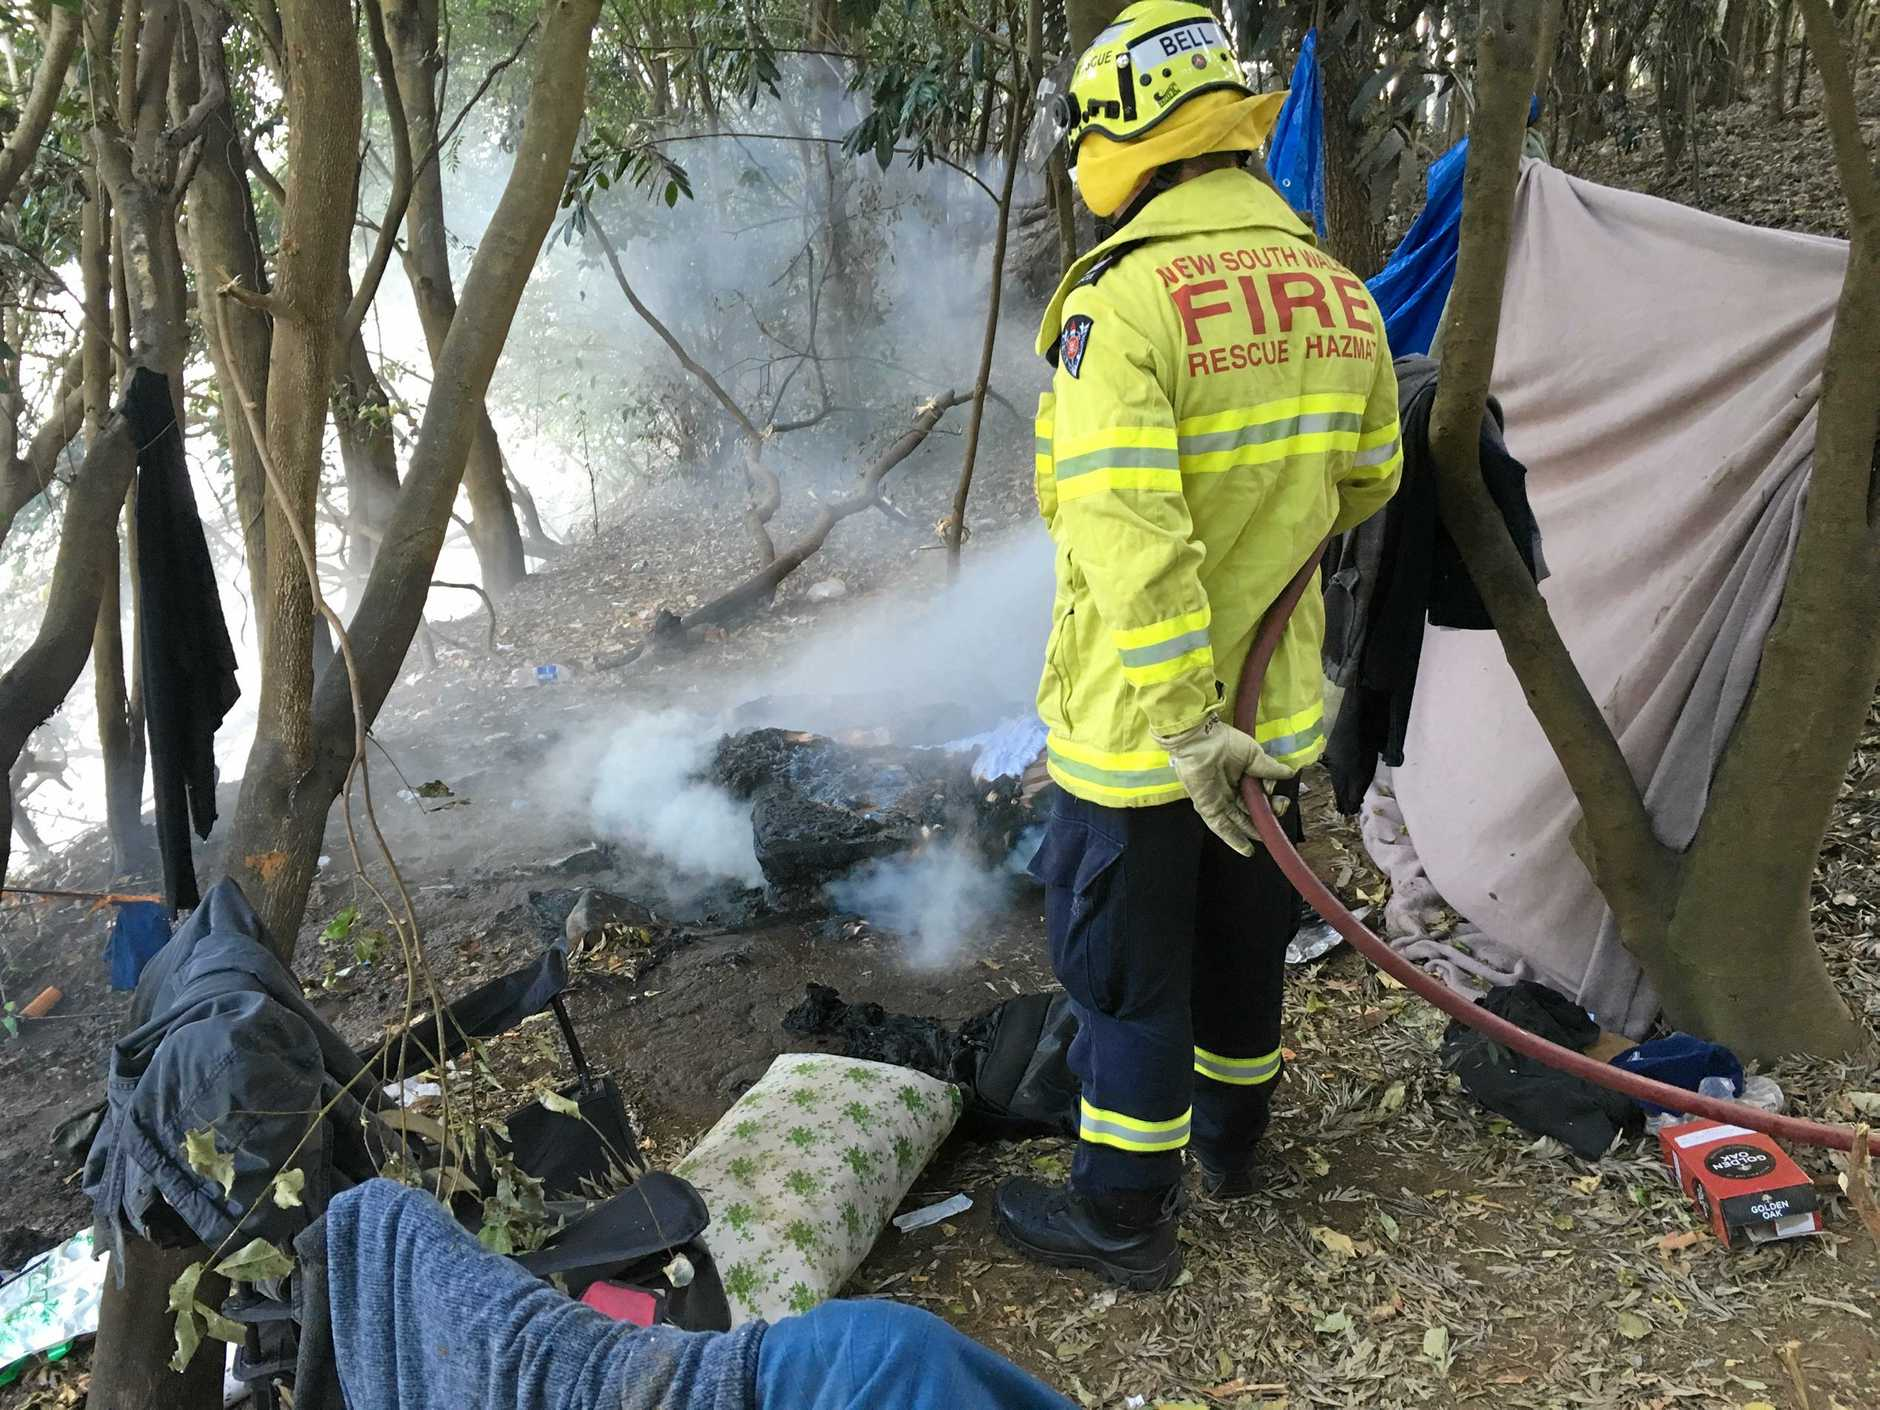 Firefighters from the Lismore Fire & Rescue crew were called to a small fire in an itinerant campsite on the riverbank in North Lismore.